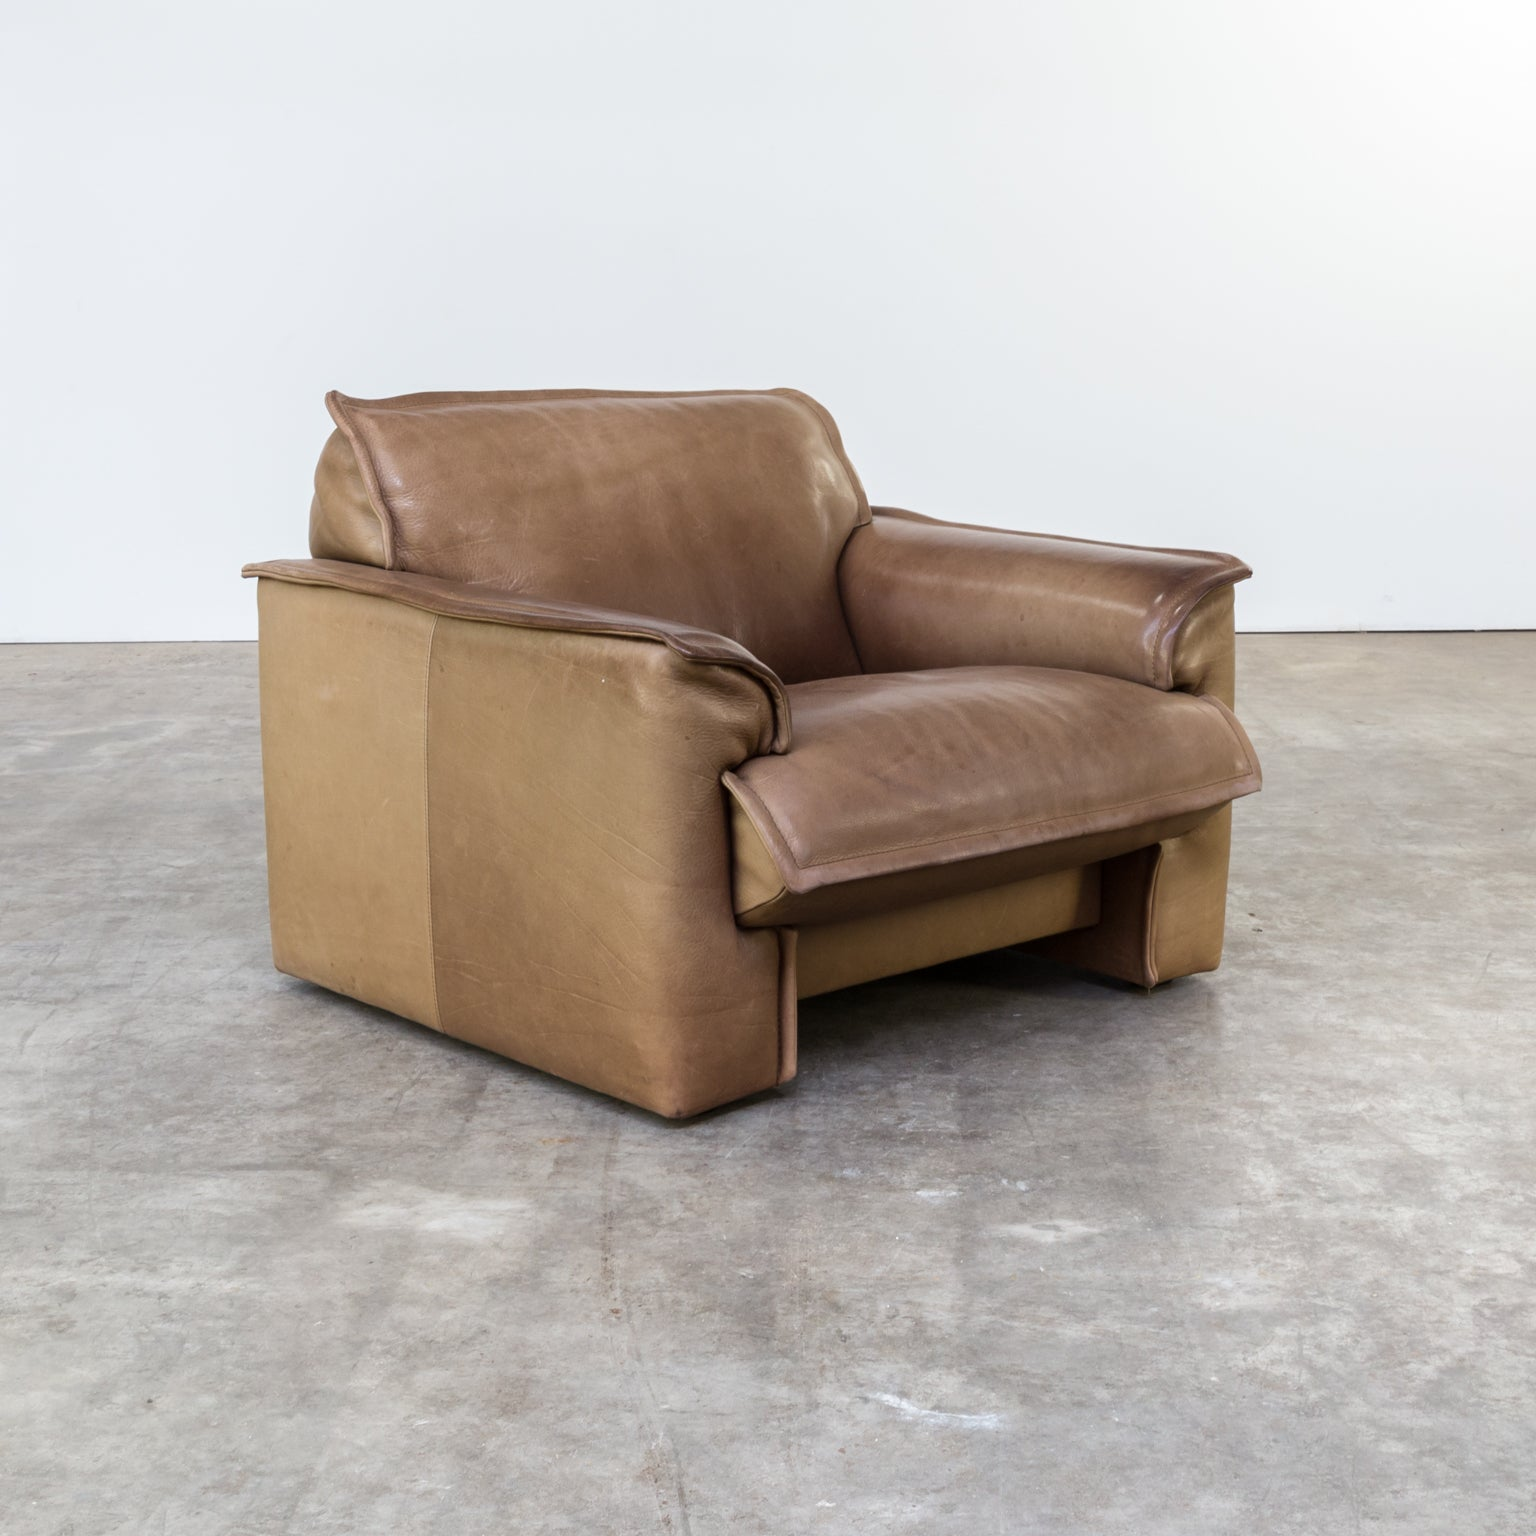 Design Bank En Fauteuil.1970s Leolux High Quality Seating Group Sofa Fauteuil For Sale At